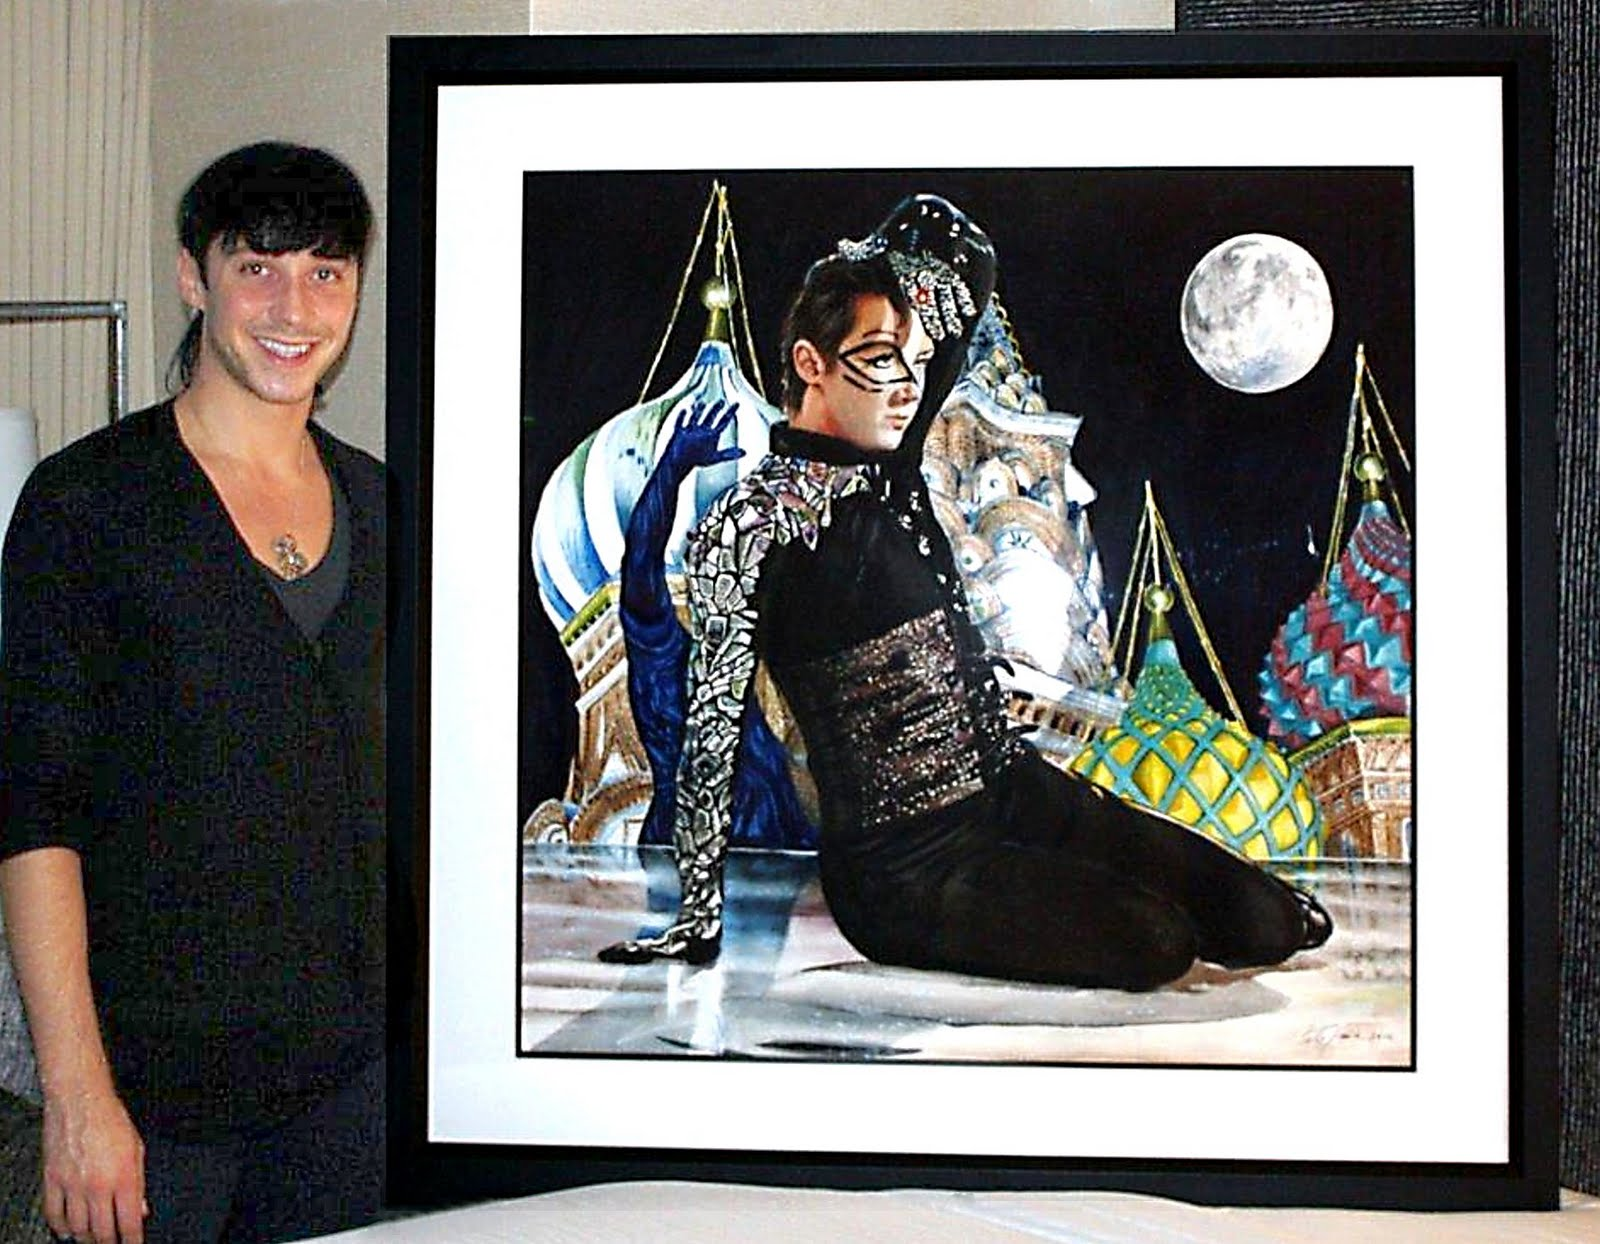 The Best Of Binky's Johnny Weir Blog: Now We Just Need A